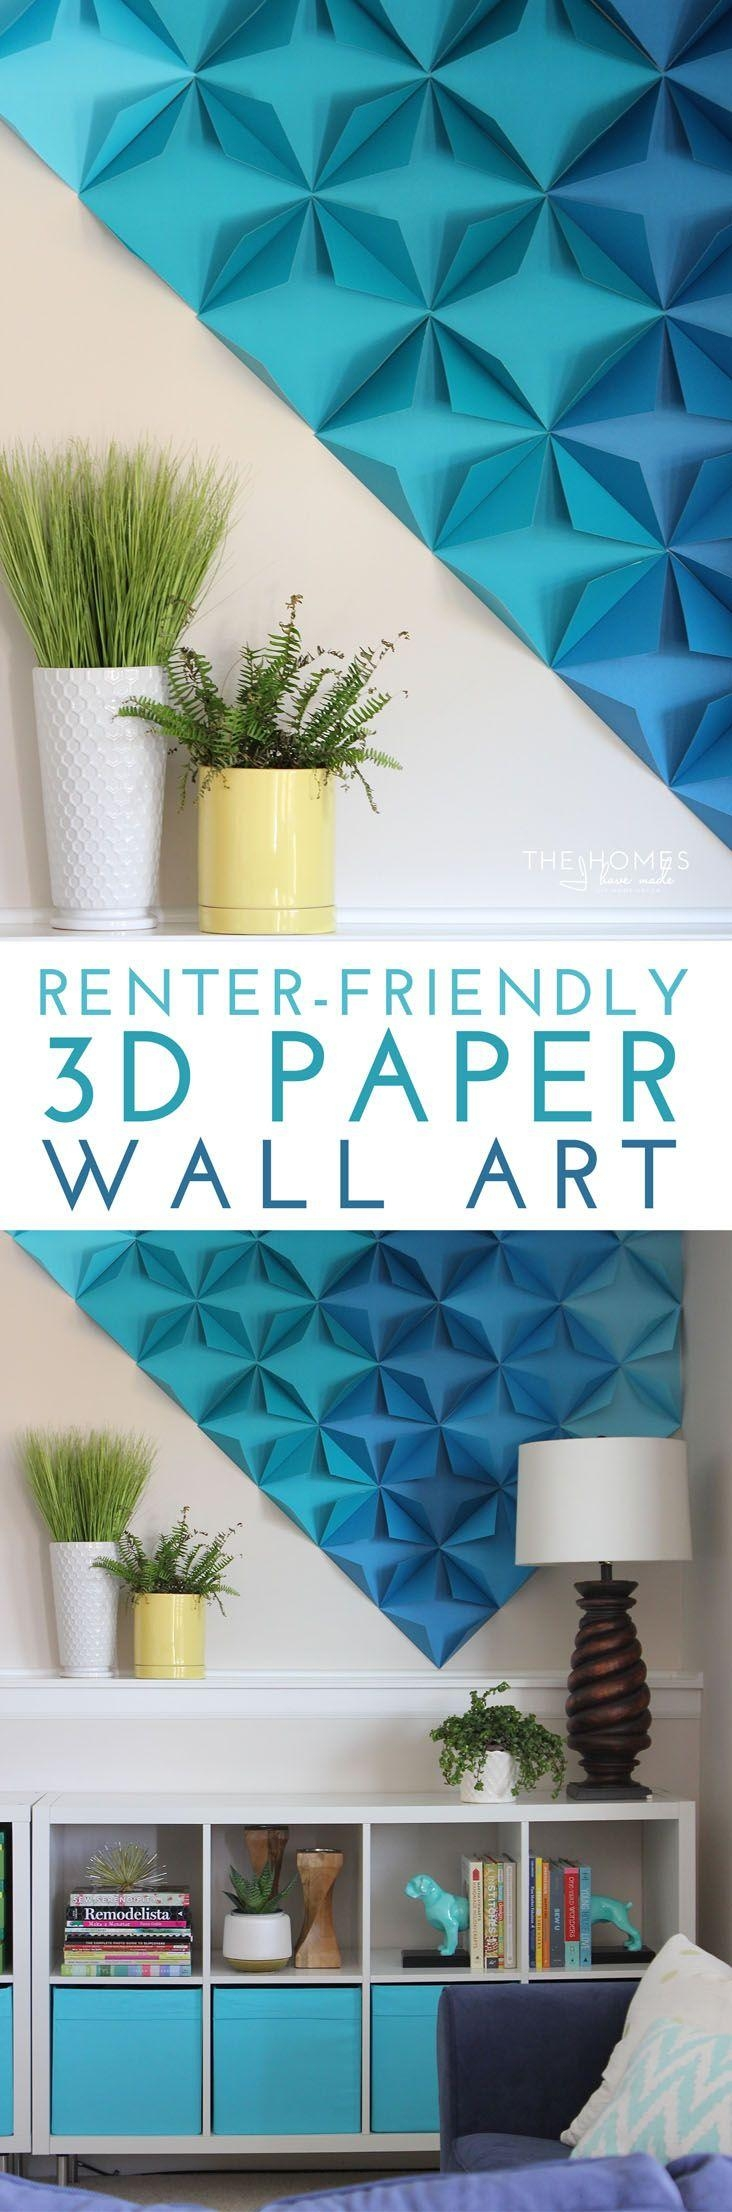 Best 25+ 3D Wall Art Ideas On Pinterest | Paper Wall Art, Paper Within 3D Clouds Out Of Paper Wall Art (Image 9 of 20)